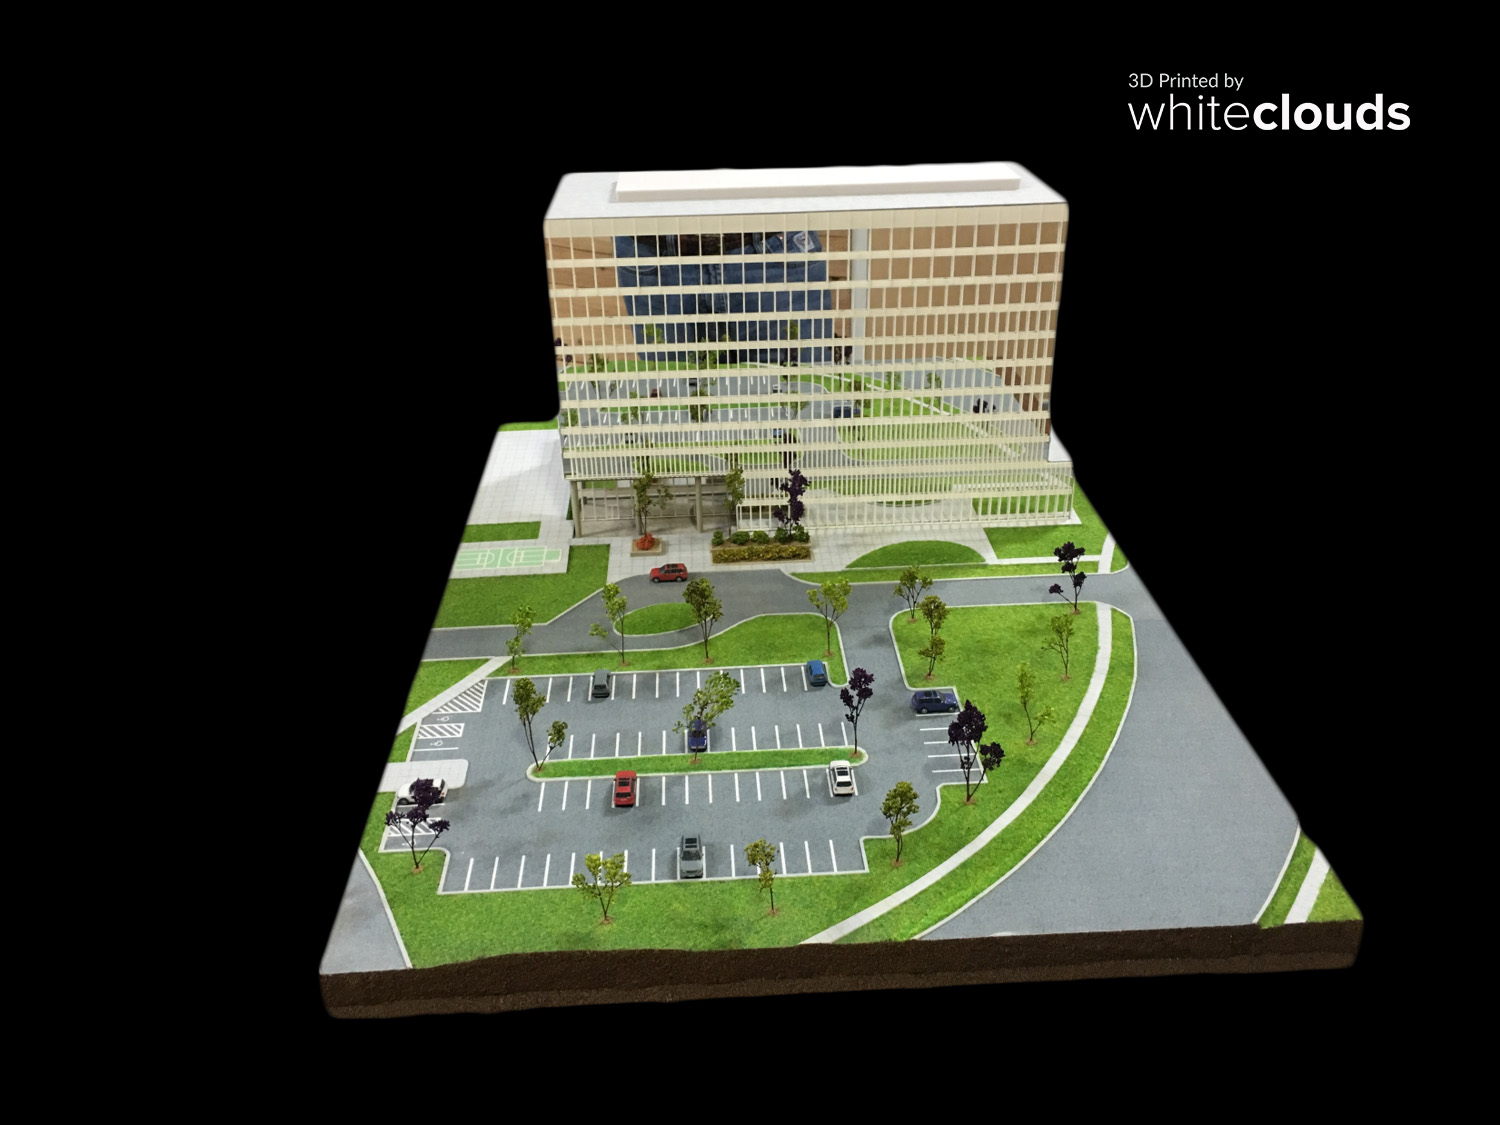 3D-Printed-WhiteClouds-Coldwell-Architecture-Coldwell-Building-Website-3.jpg